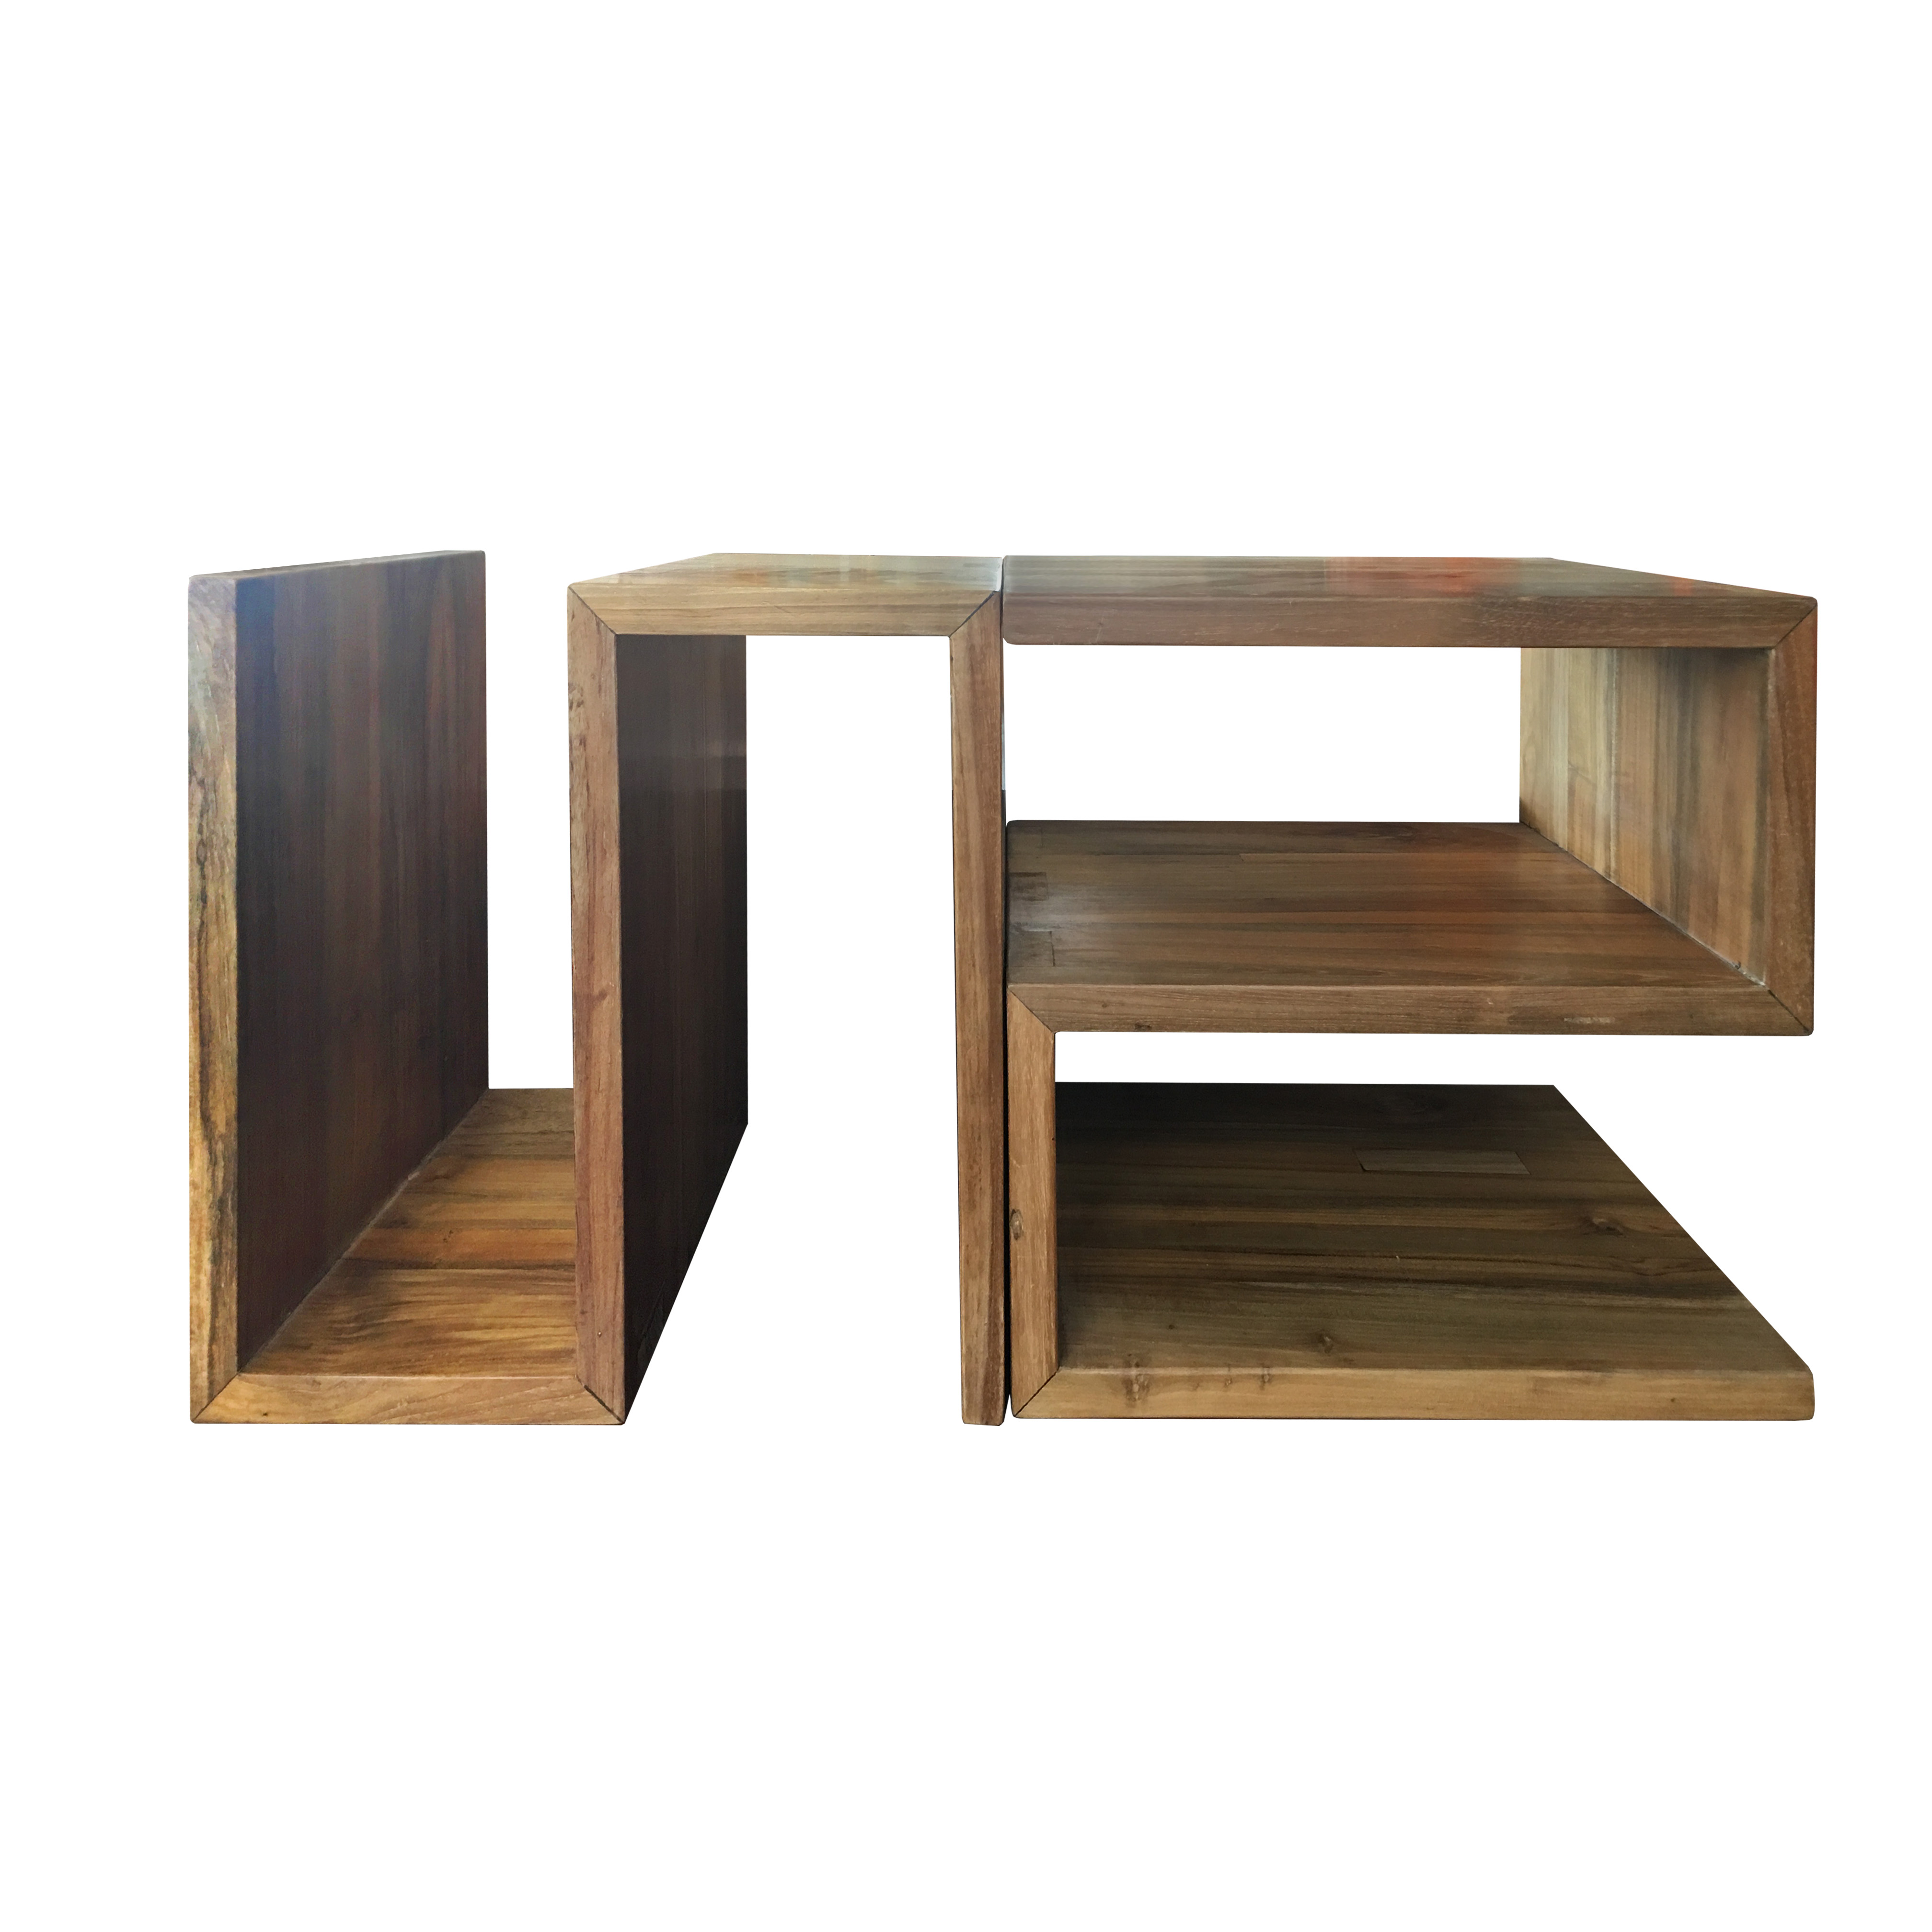 Our S End Table can be used alone or grouped together to form a coffee table or bookshelf.